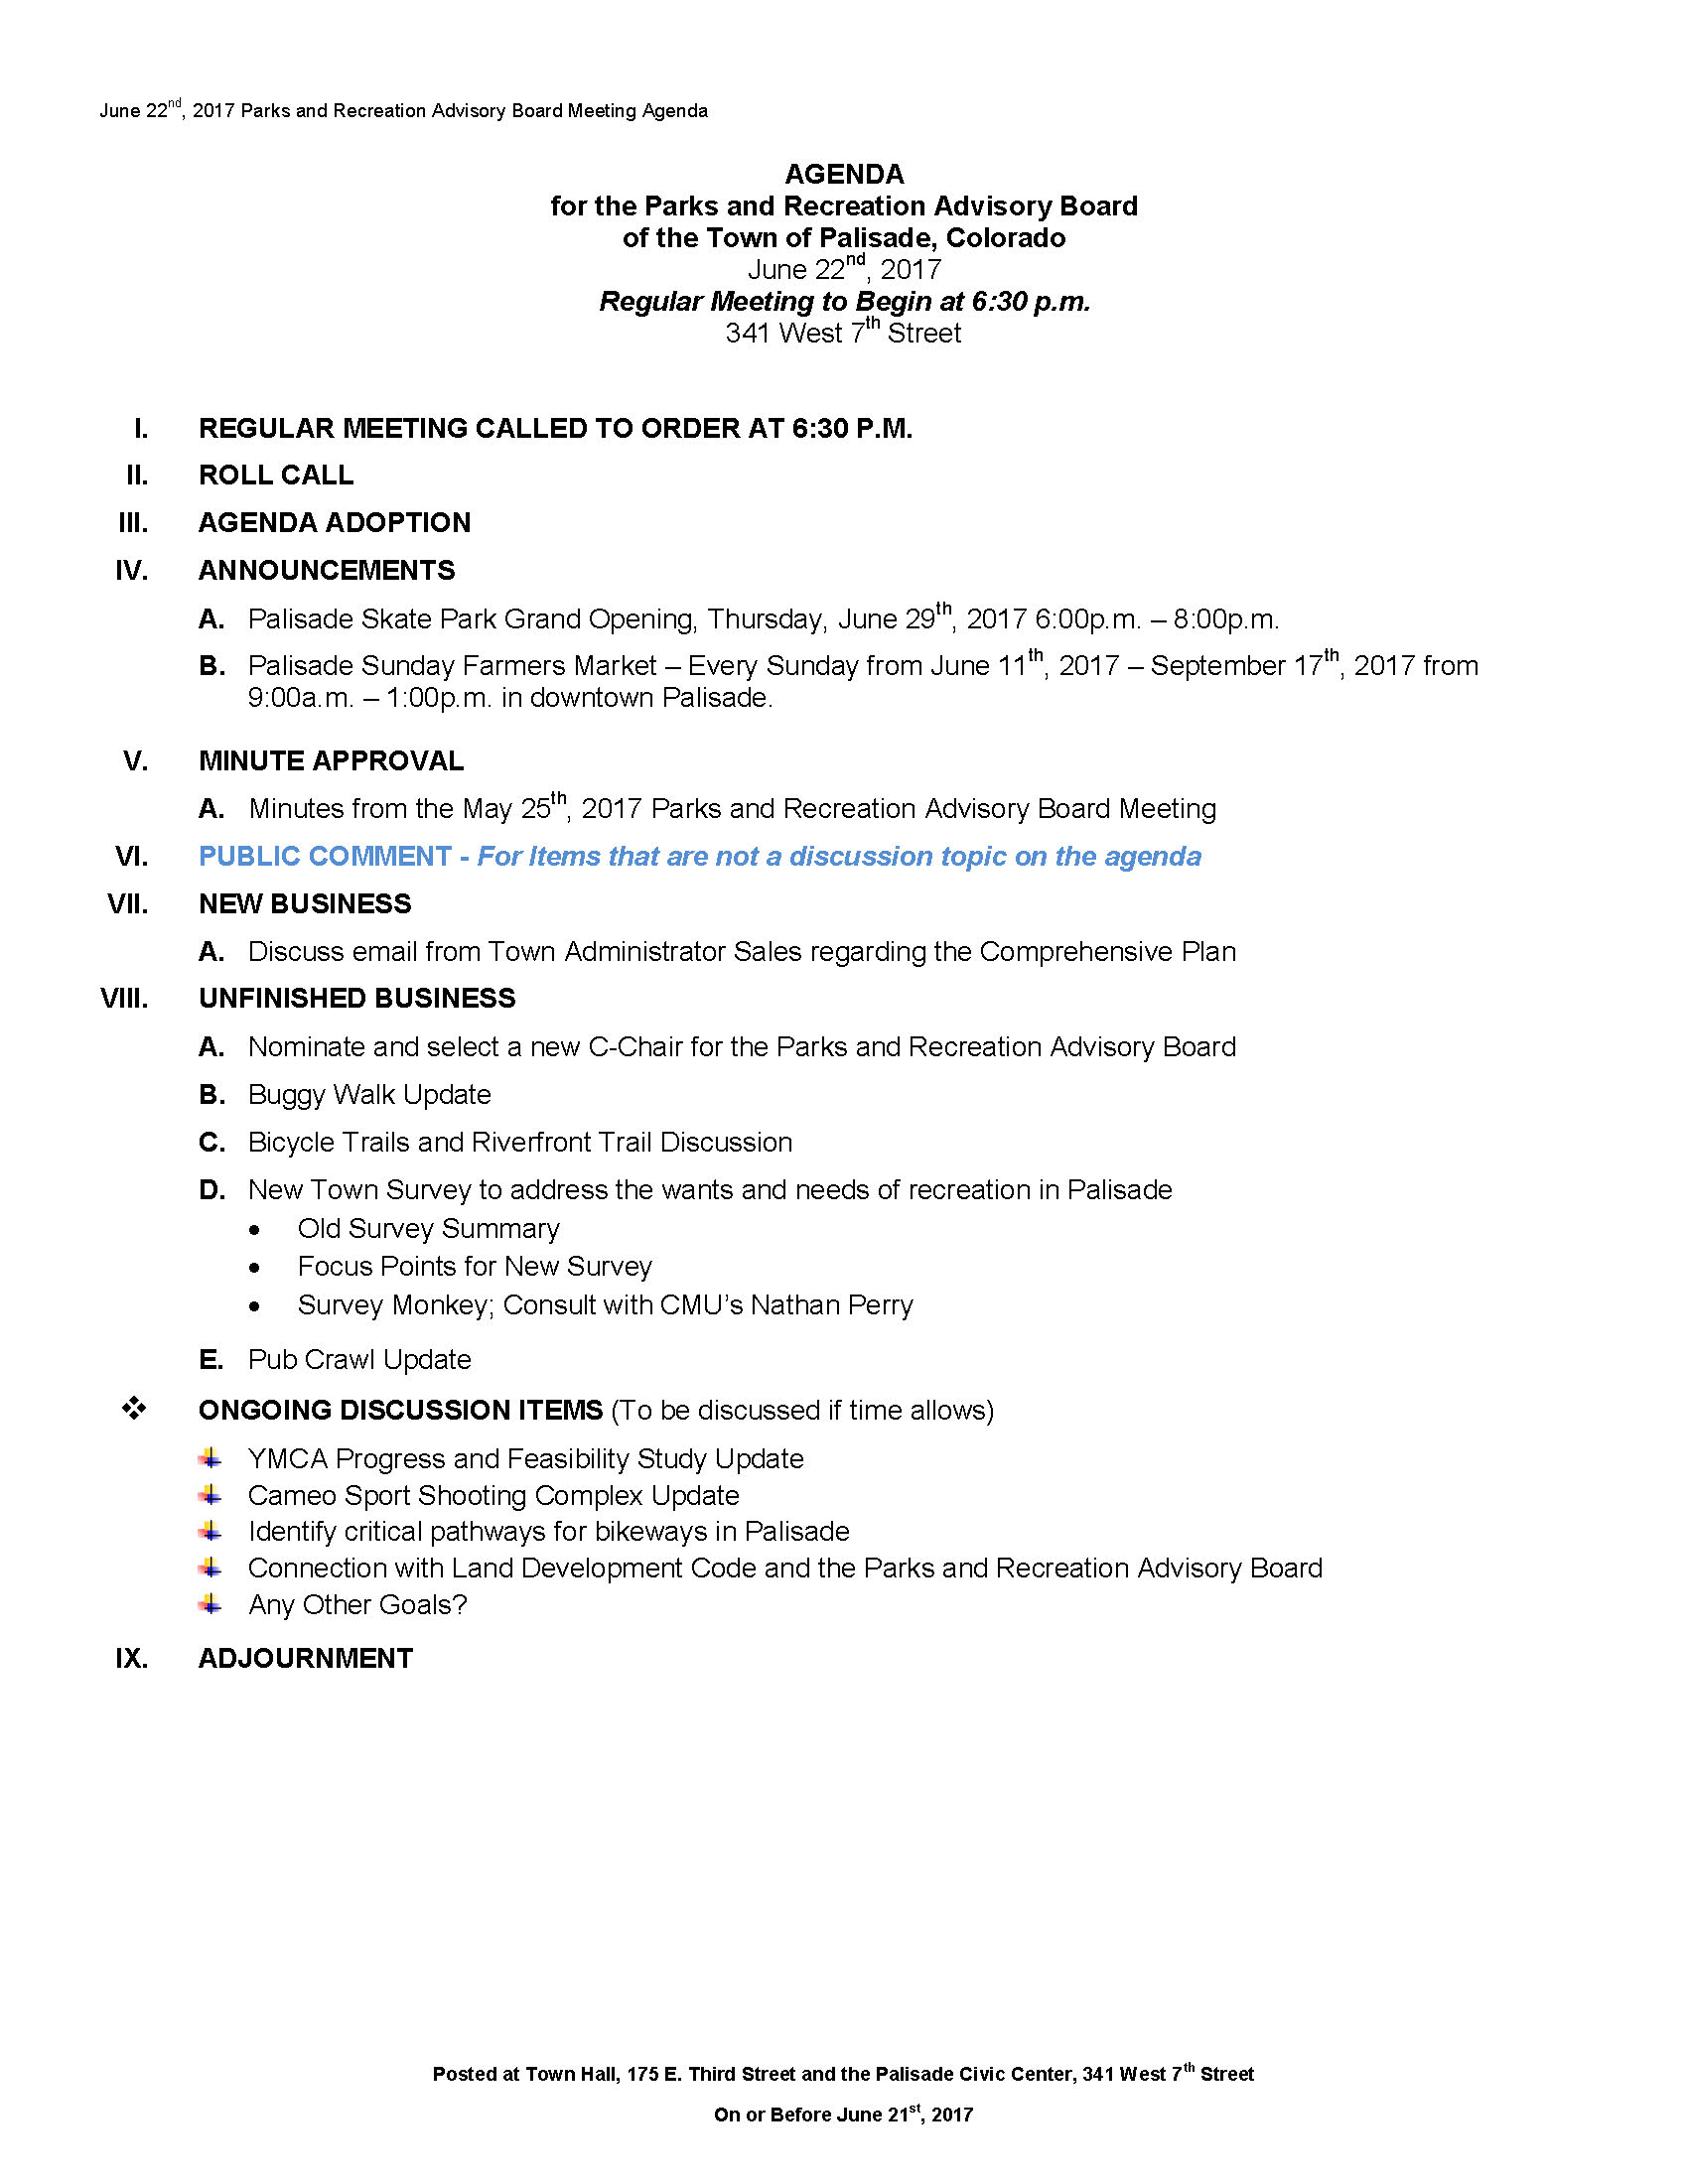 June 22nd 2017 PRAC Meeting Agenda